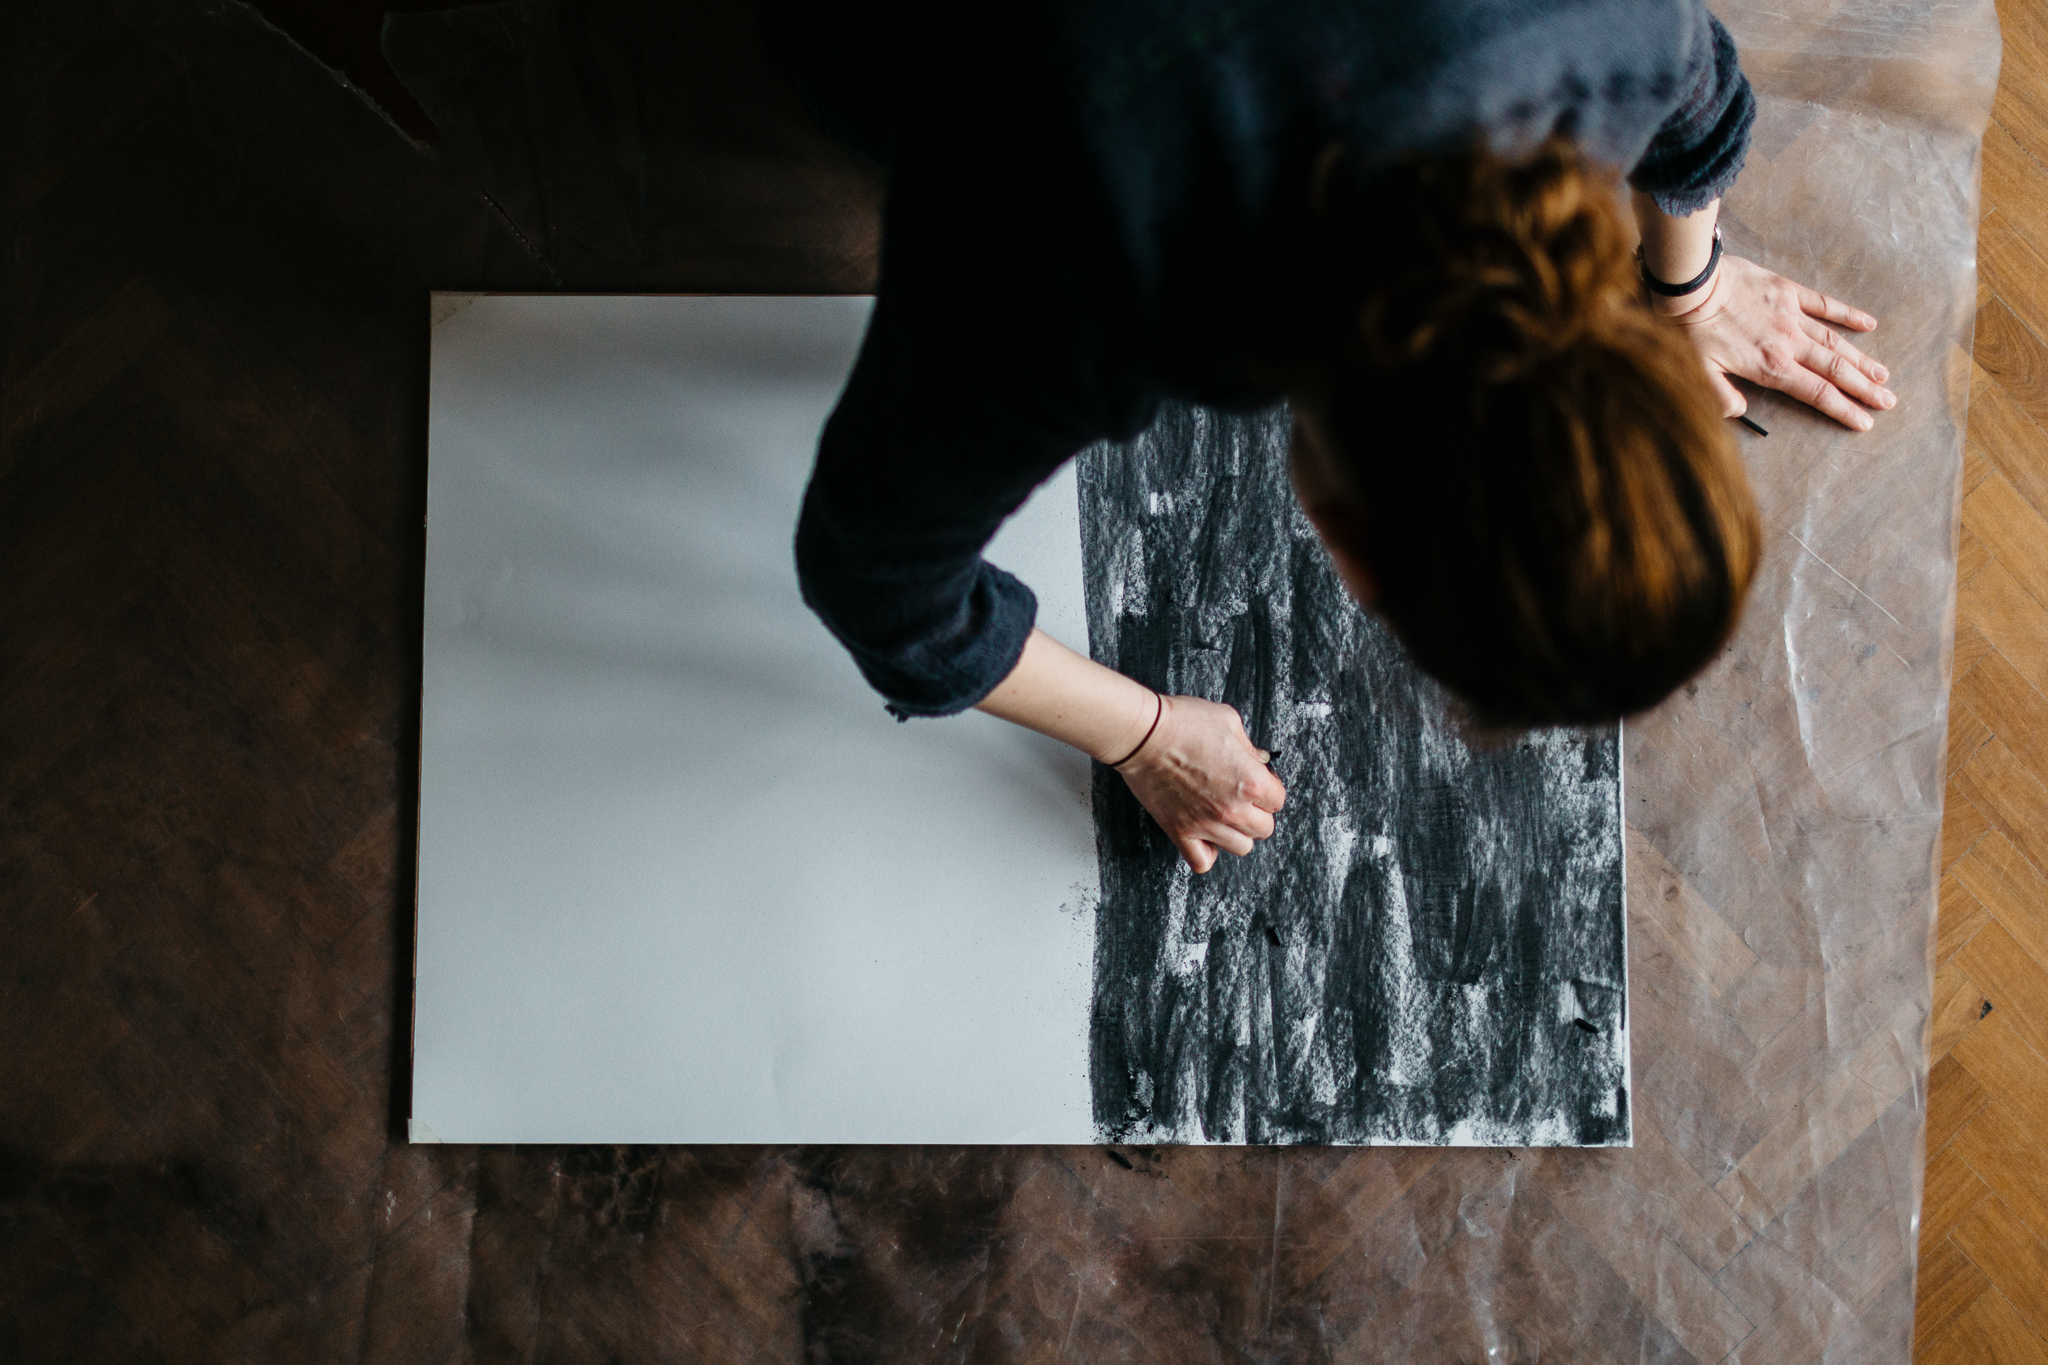 woman drawing with charcoal on floor during a workshop at festival